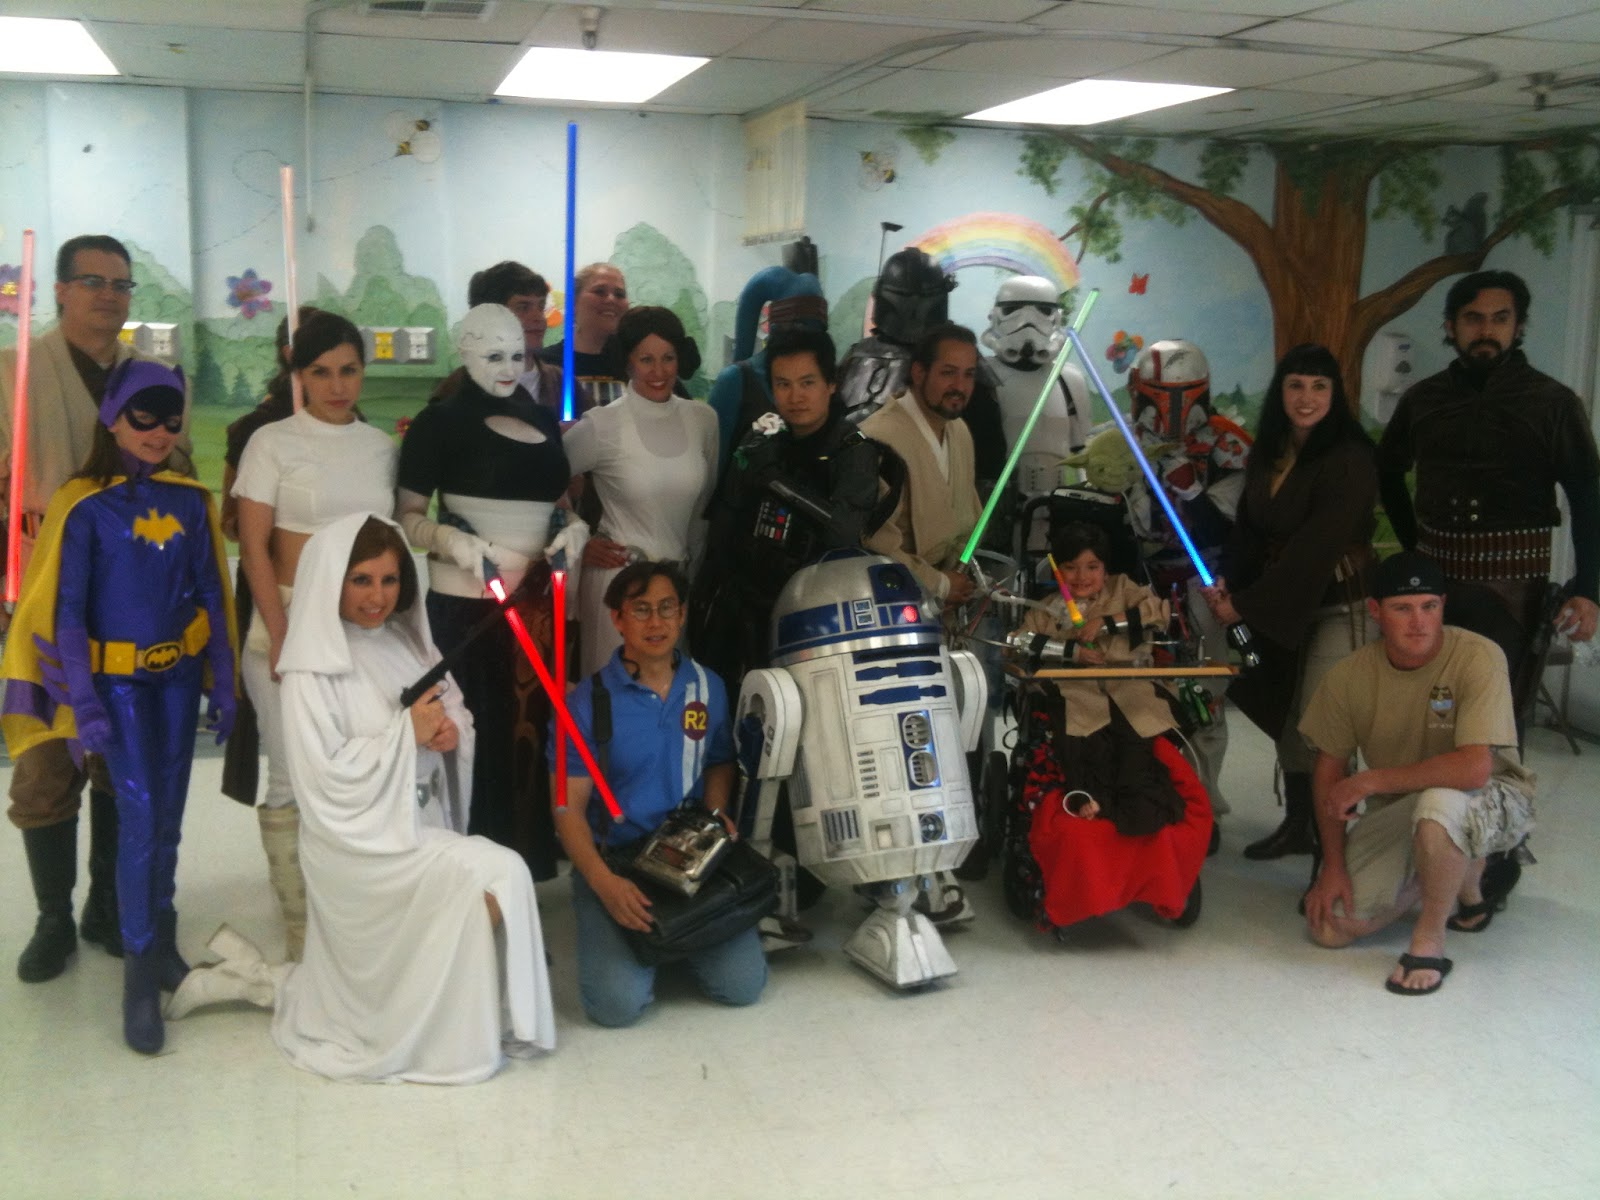 Adventures With R2 D2 Bb 8 Totally Kids Specialty Health Care Event